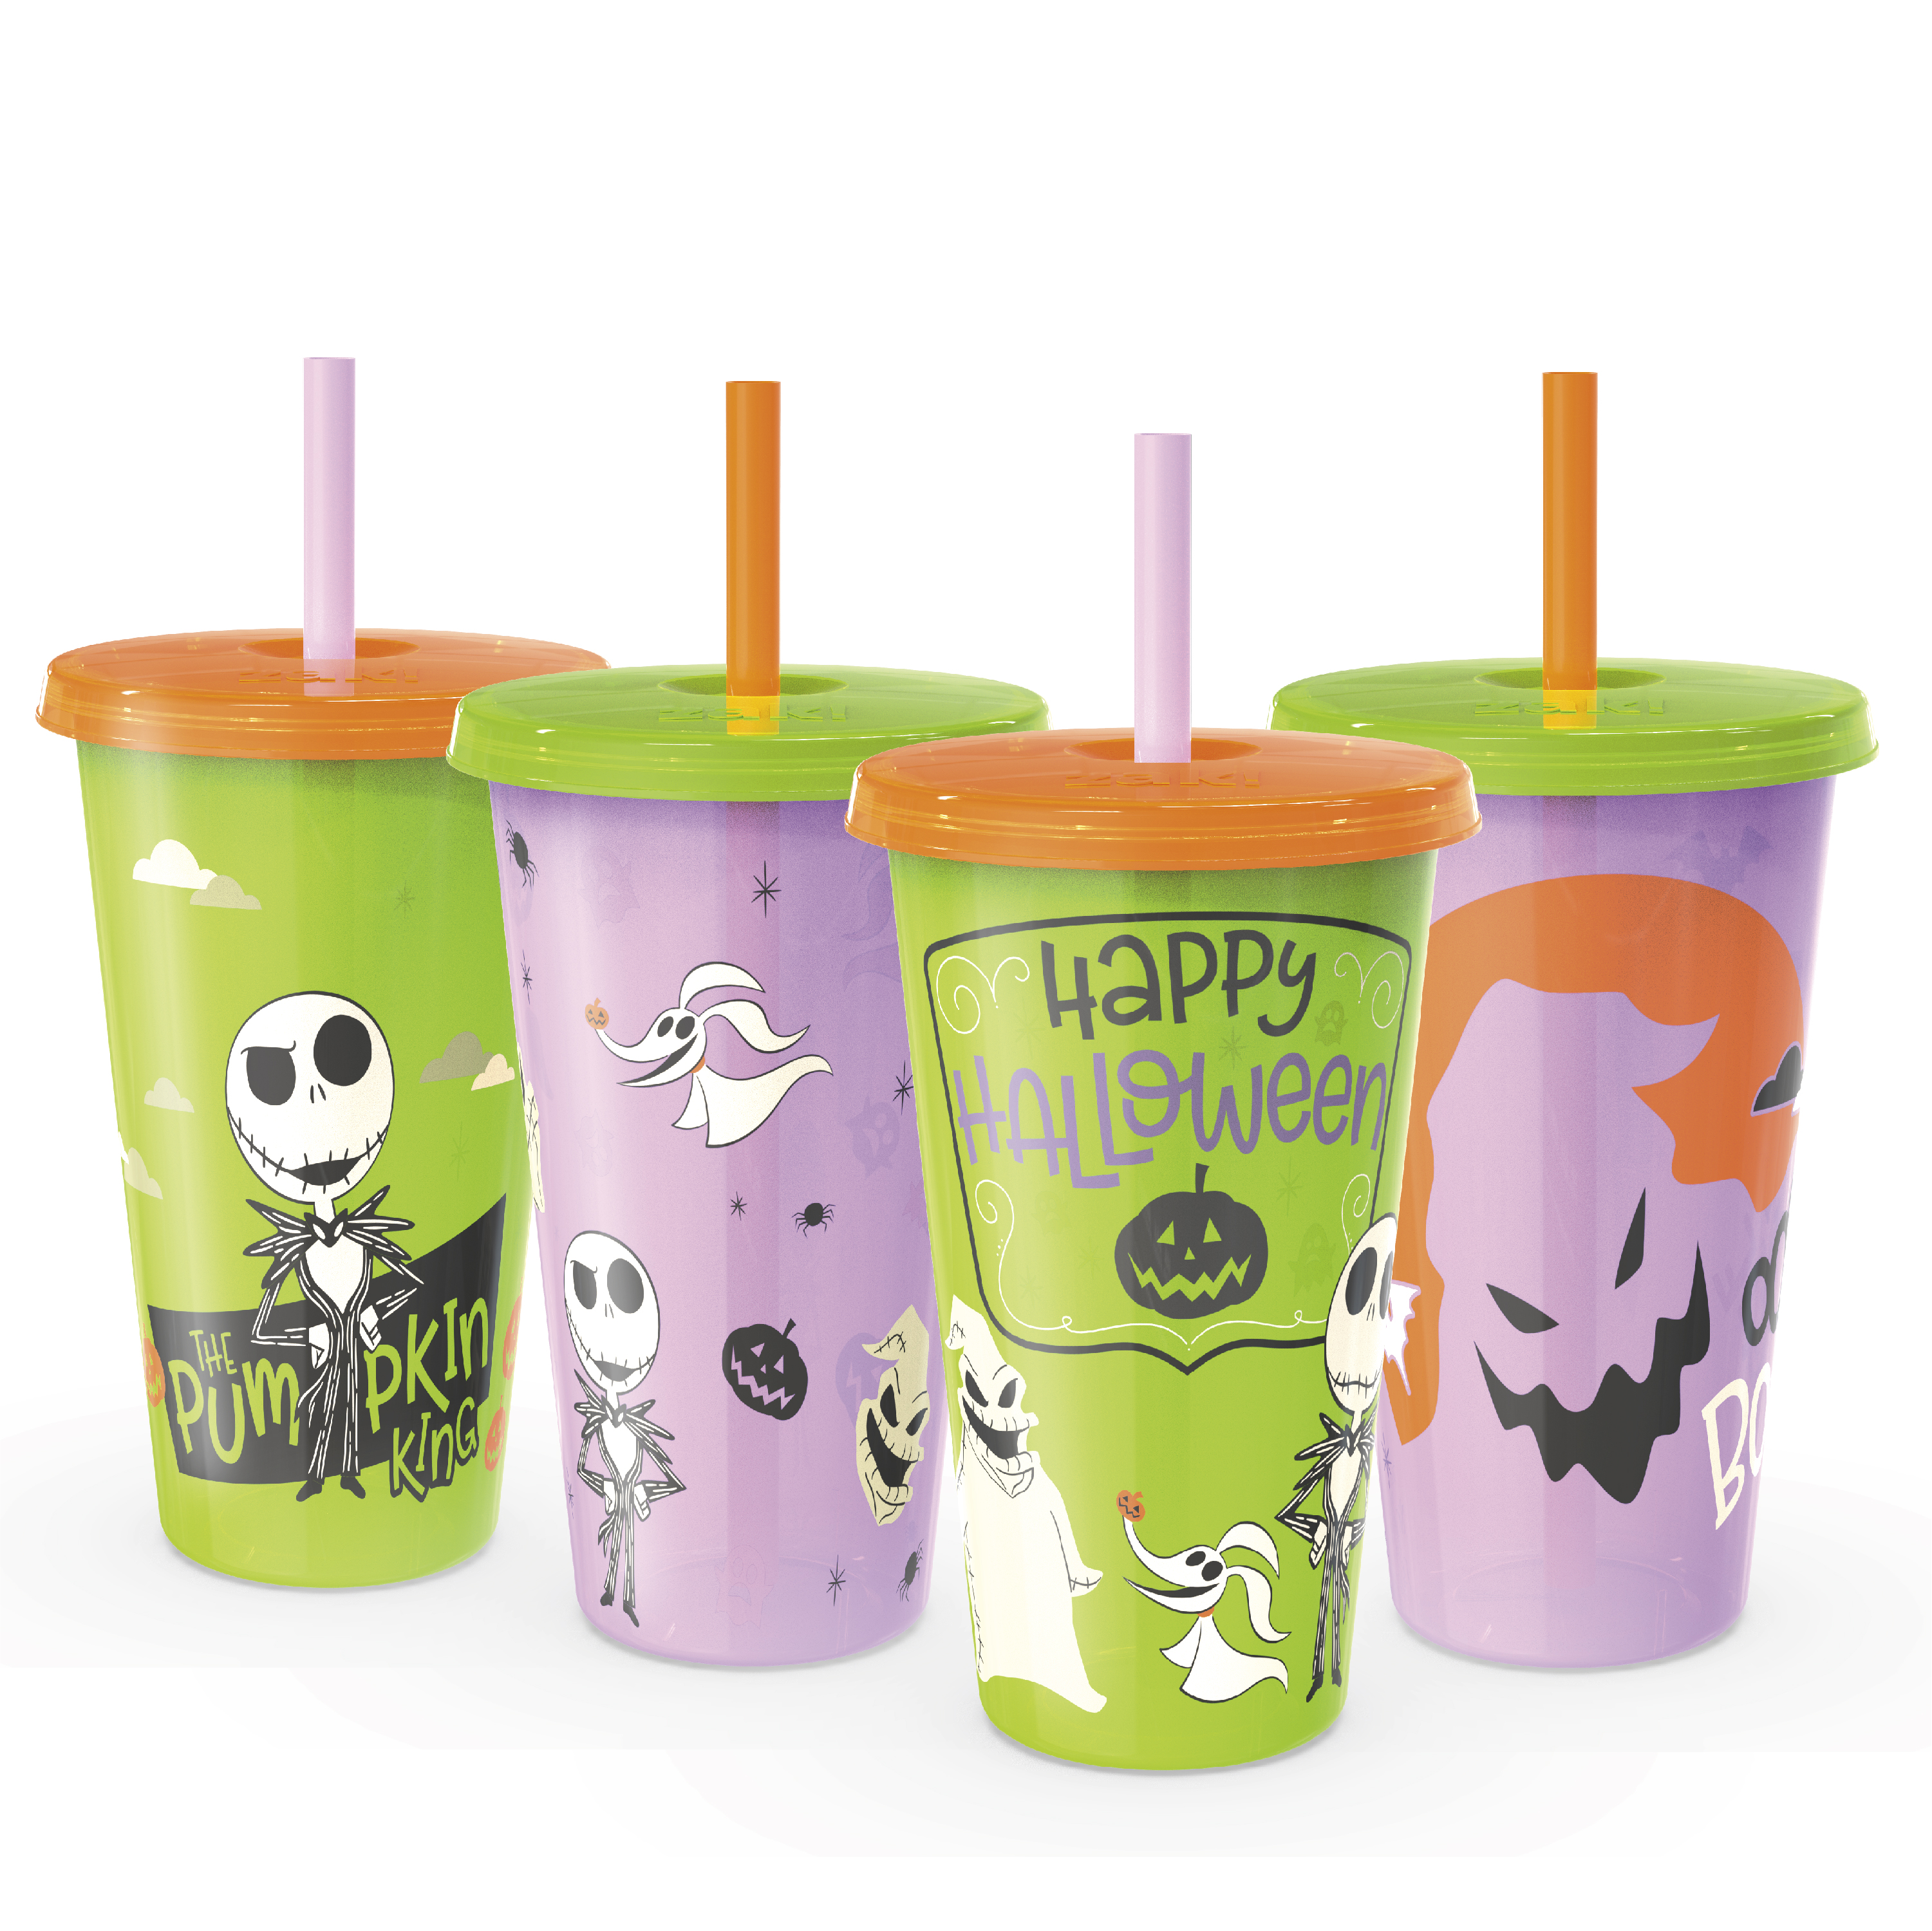 The Nightmare Before Christmas 24 ounce Reusable Plastic Kids Tumbler, Jack Skellington, Oogie Boogie & Zero, 4-piece set slideshow image 2